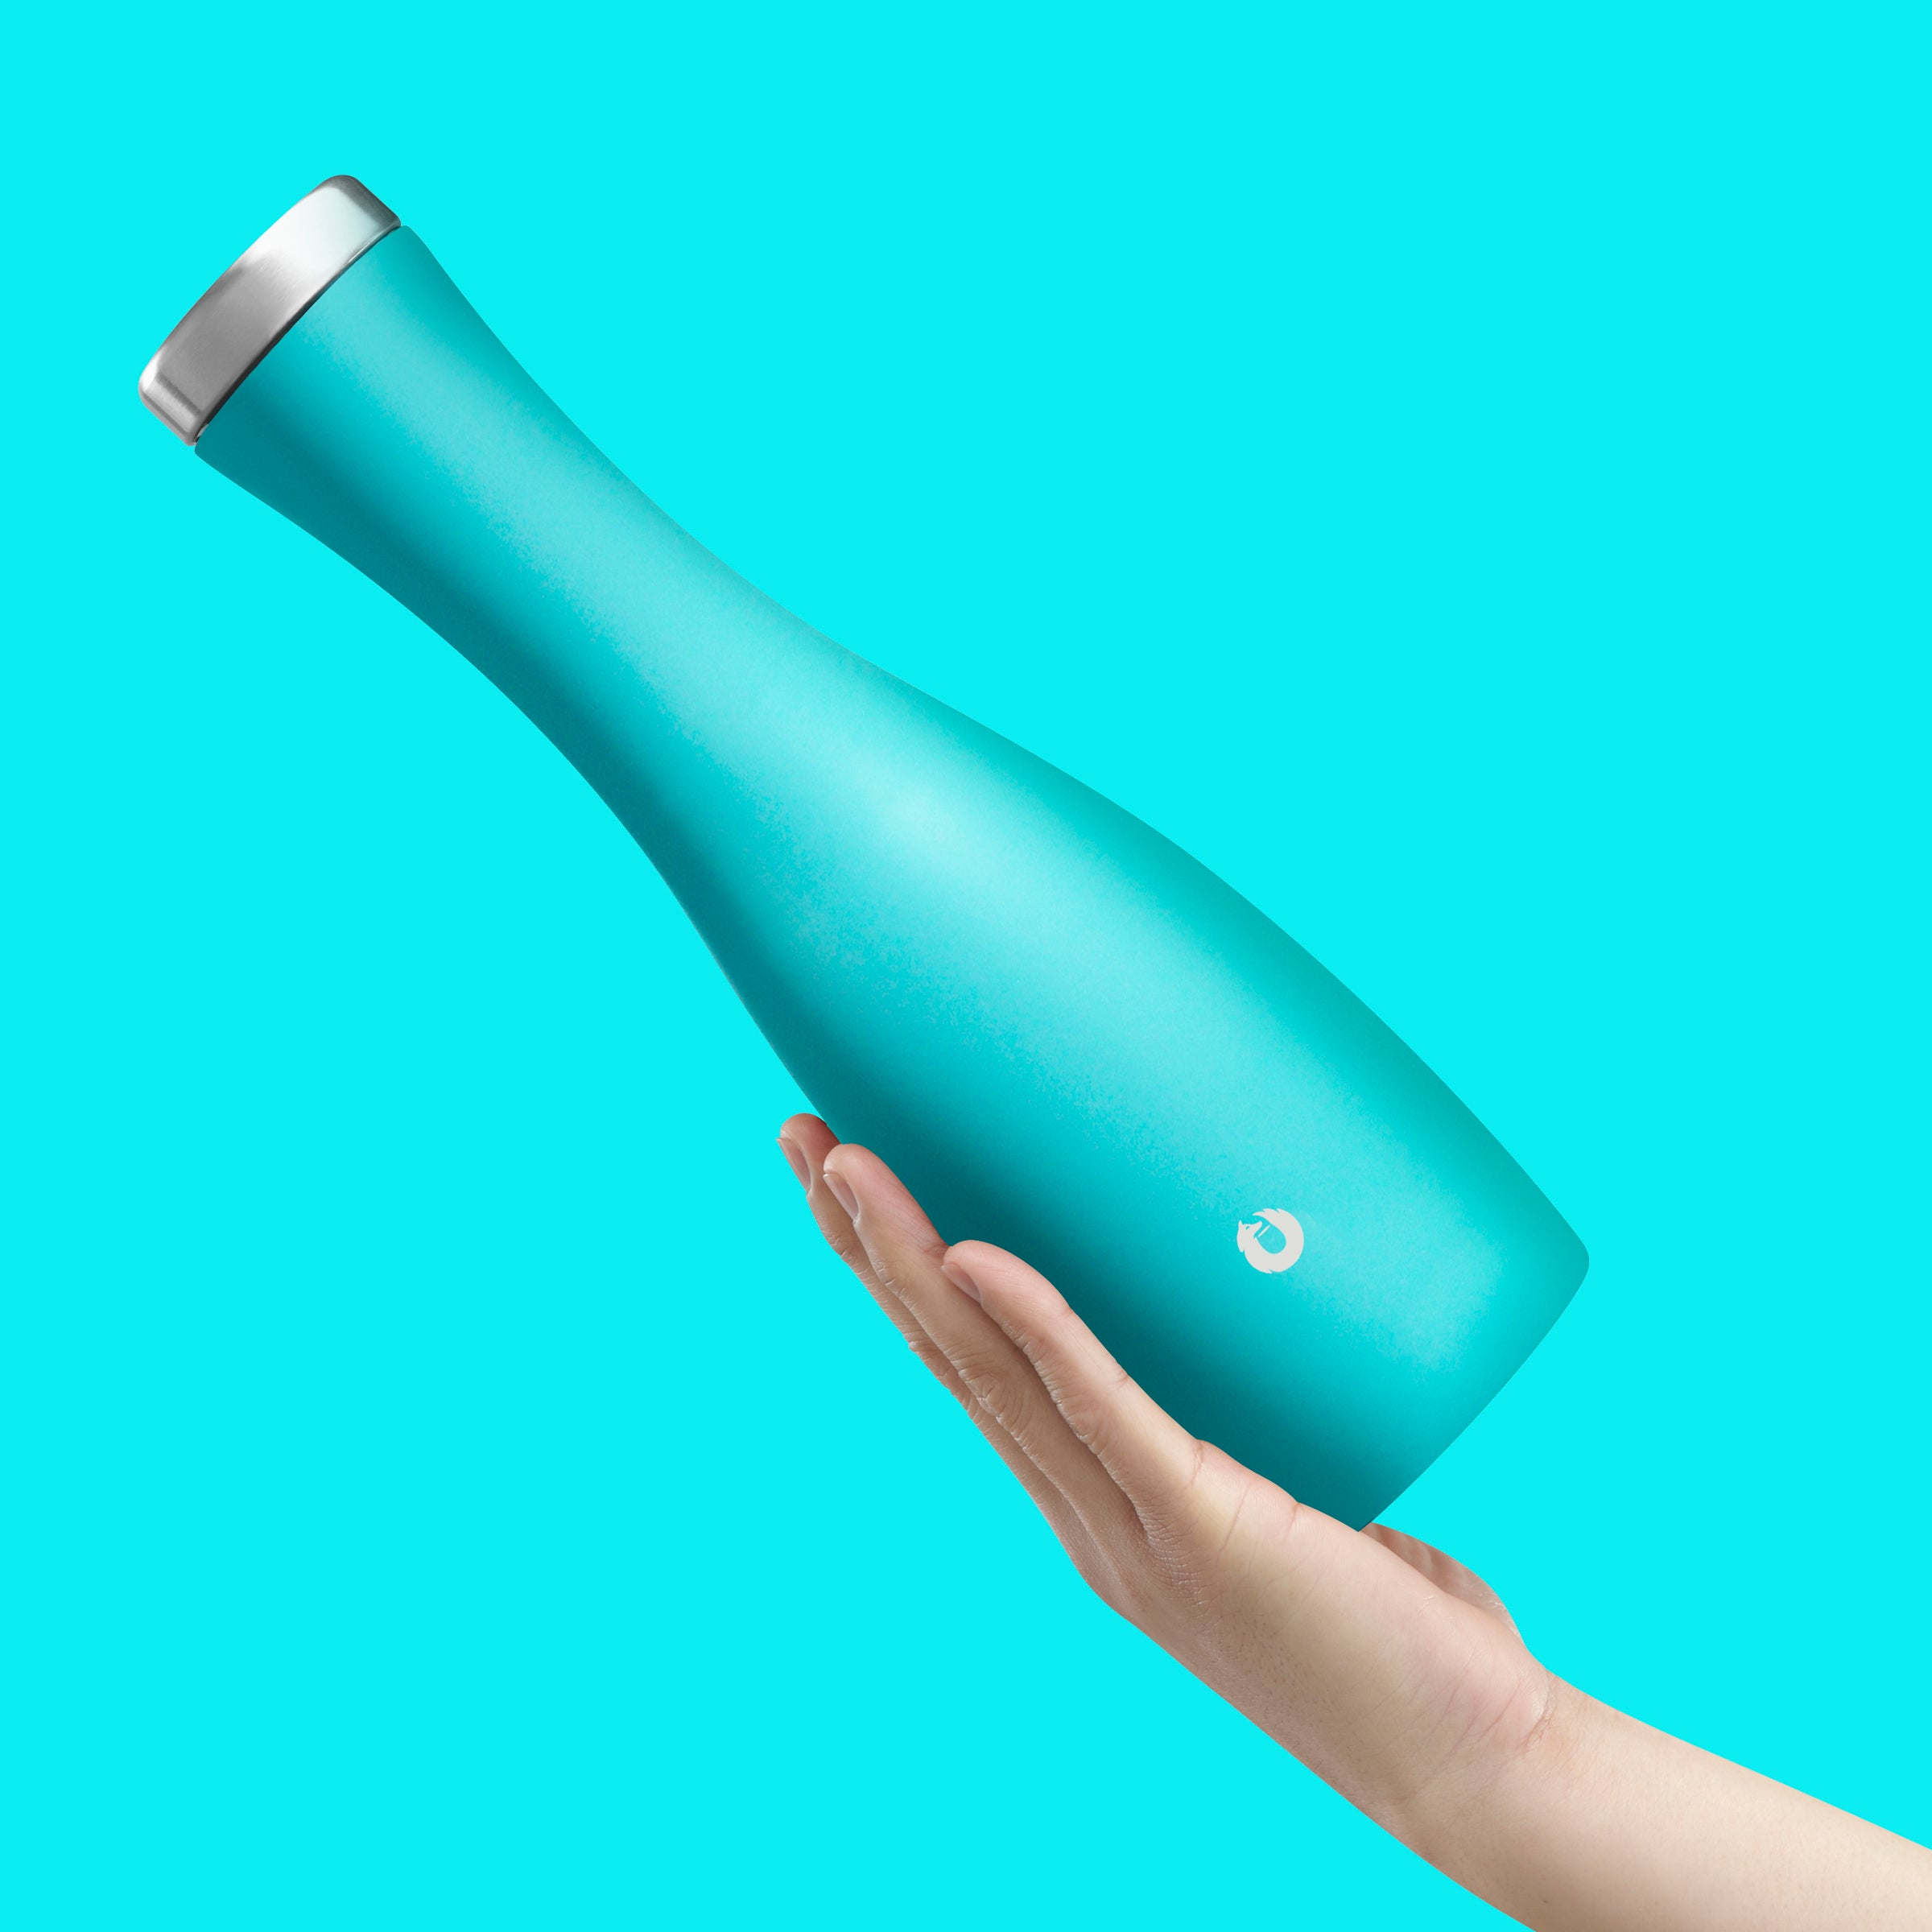 Stainless Steel Carafe in Teal - Easy Pour